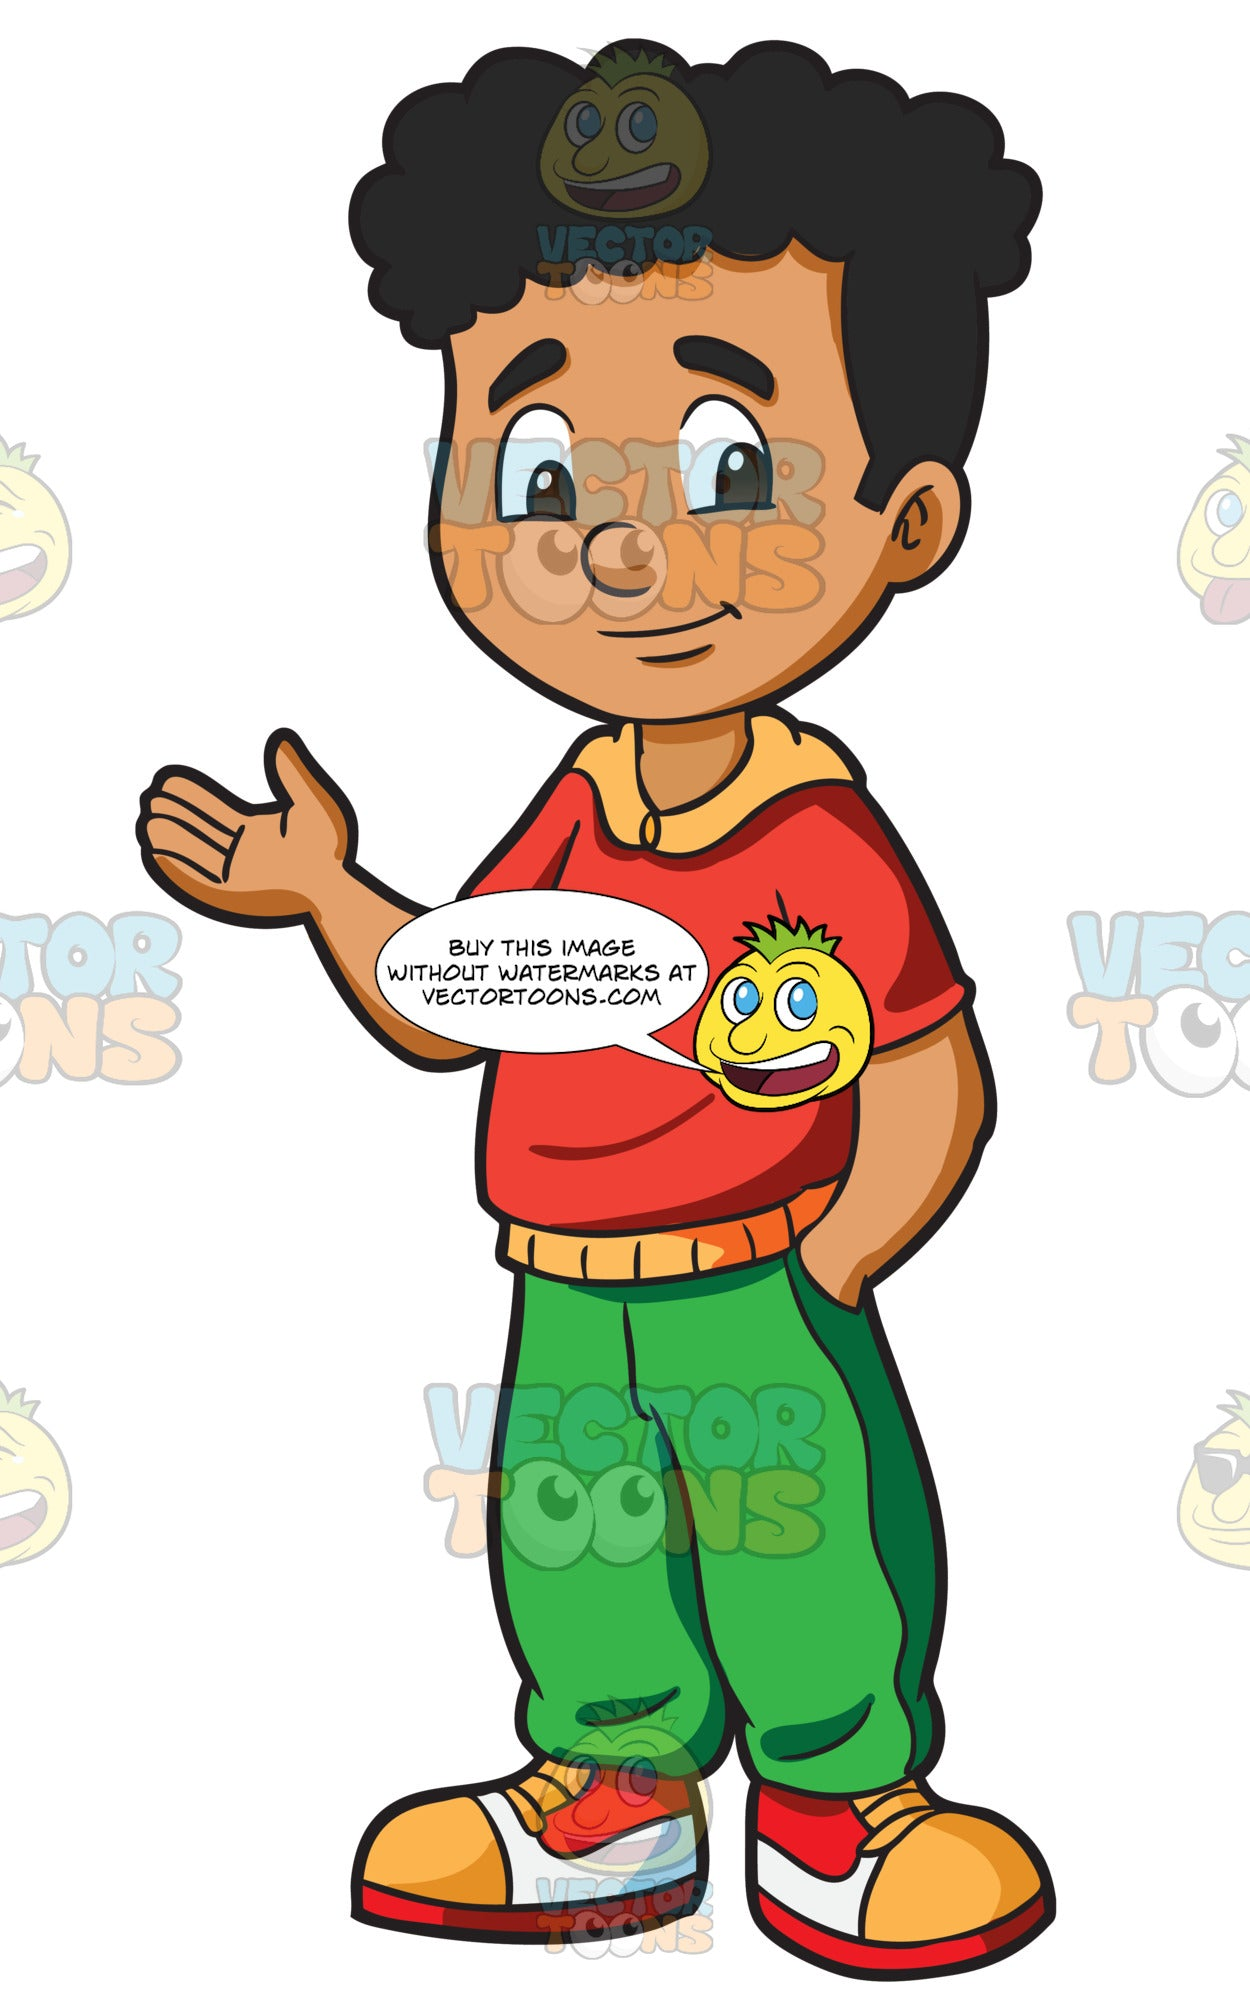 A Friendly Looking Male Middle School Student Clipart Cartoons By Vectortoons